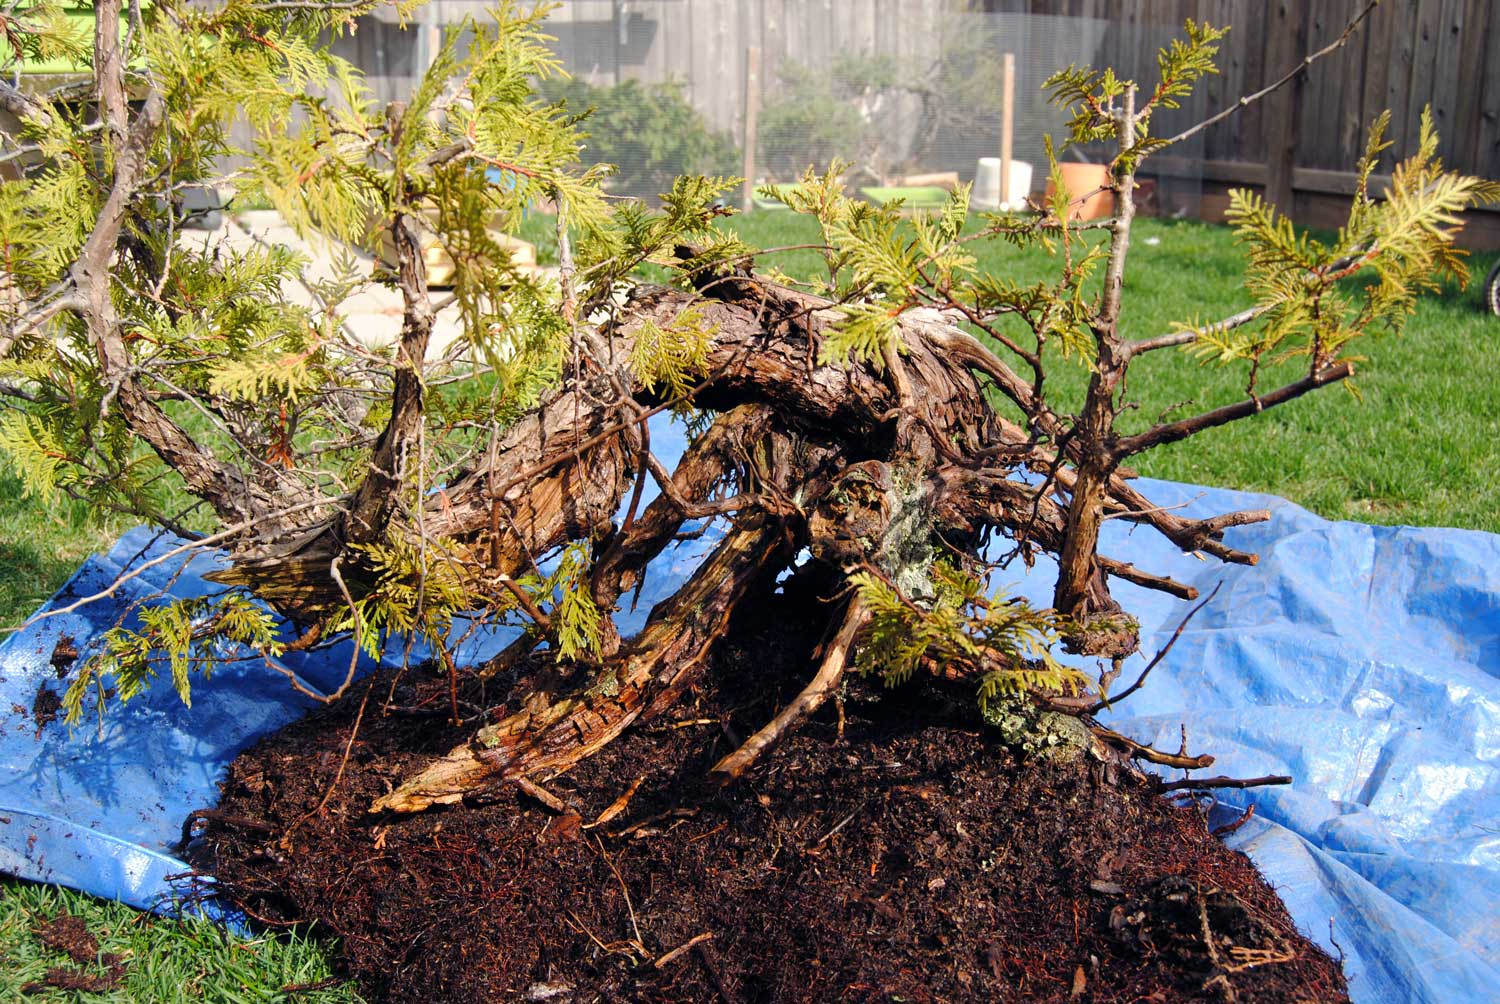 Before root washing and potting up, giving a glimpse into the massive base. This is a good example of the impenetrable root mass that Thujas are often collected with. Hosing out as much muck as possible greatly simplifies watering the containerized tree.